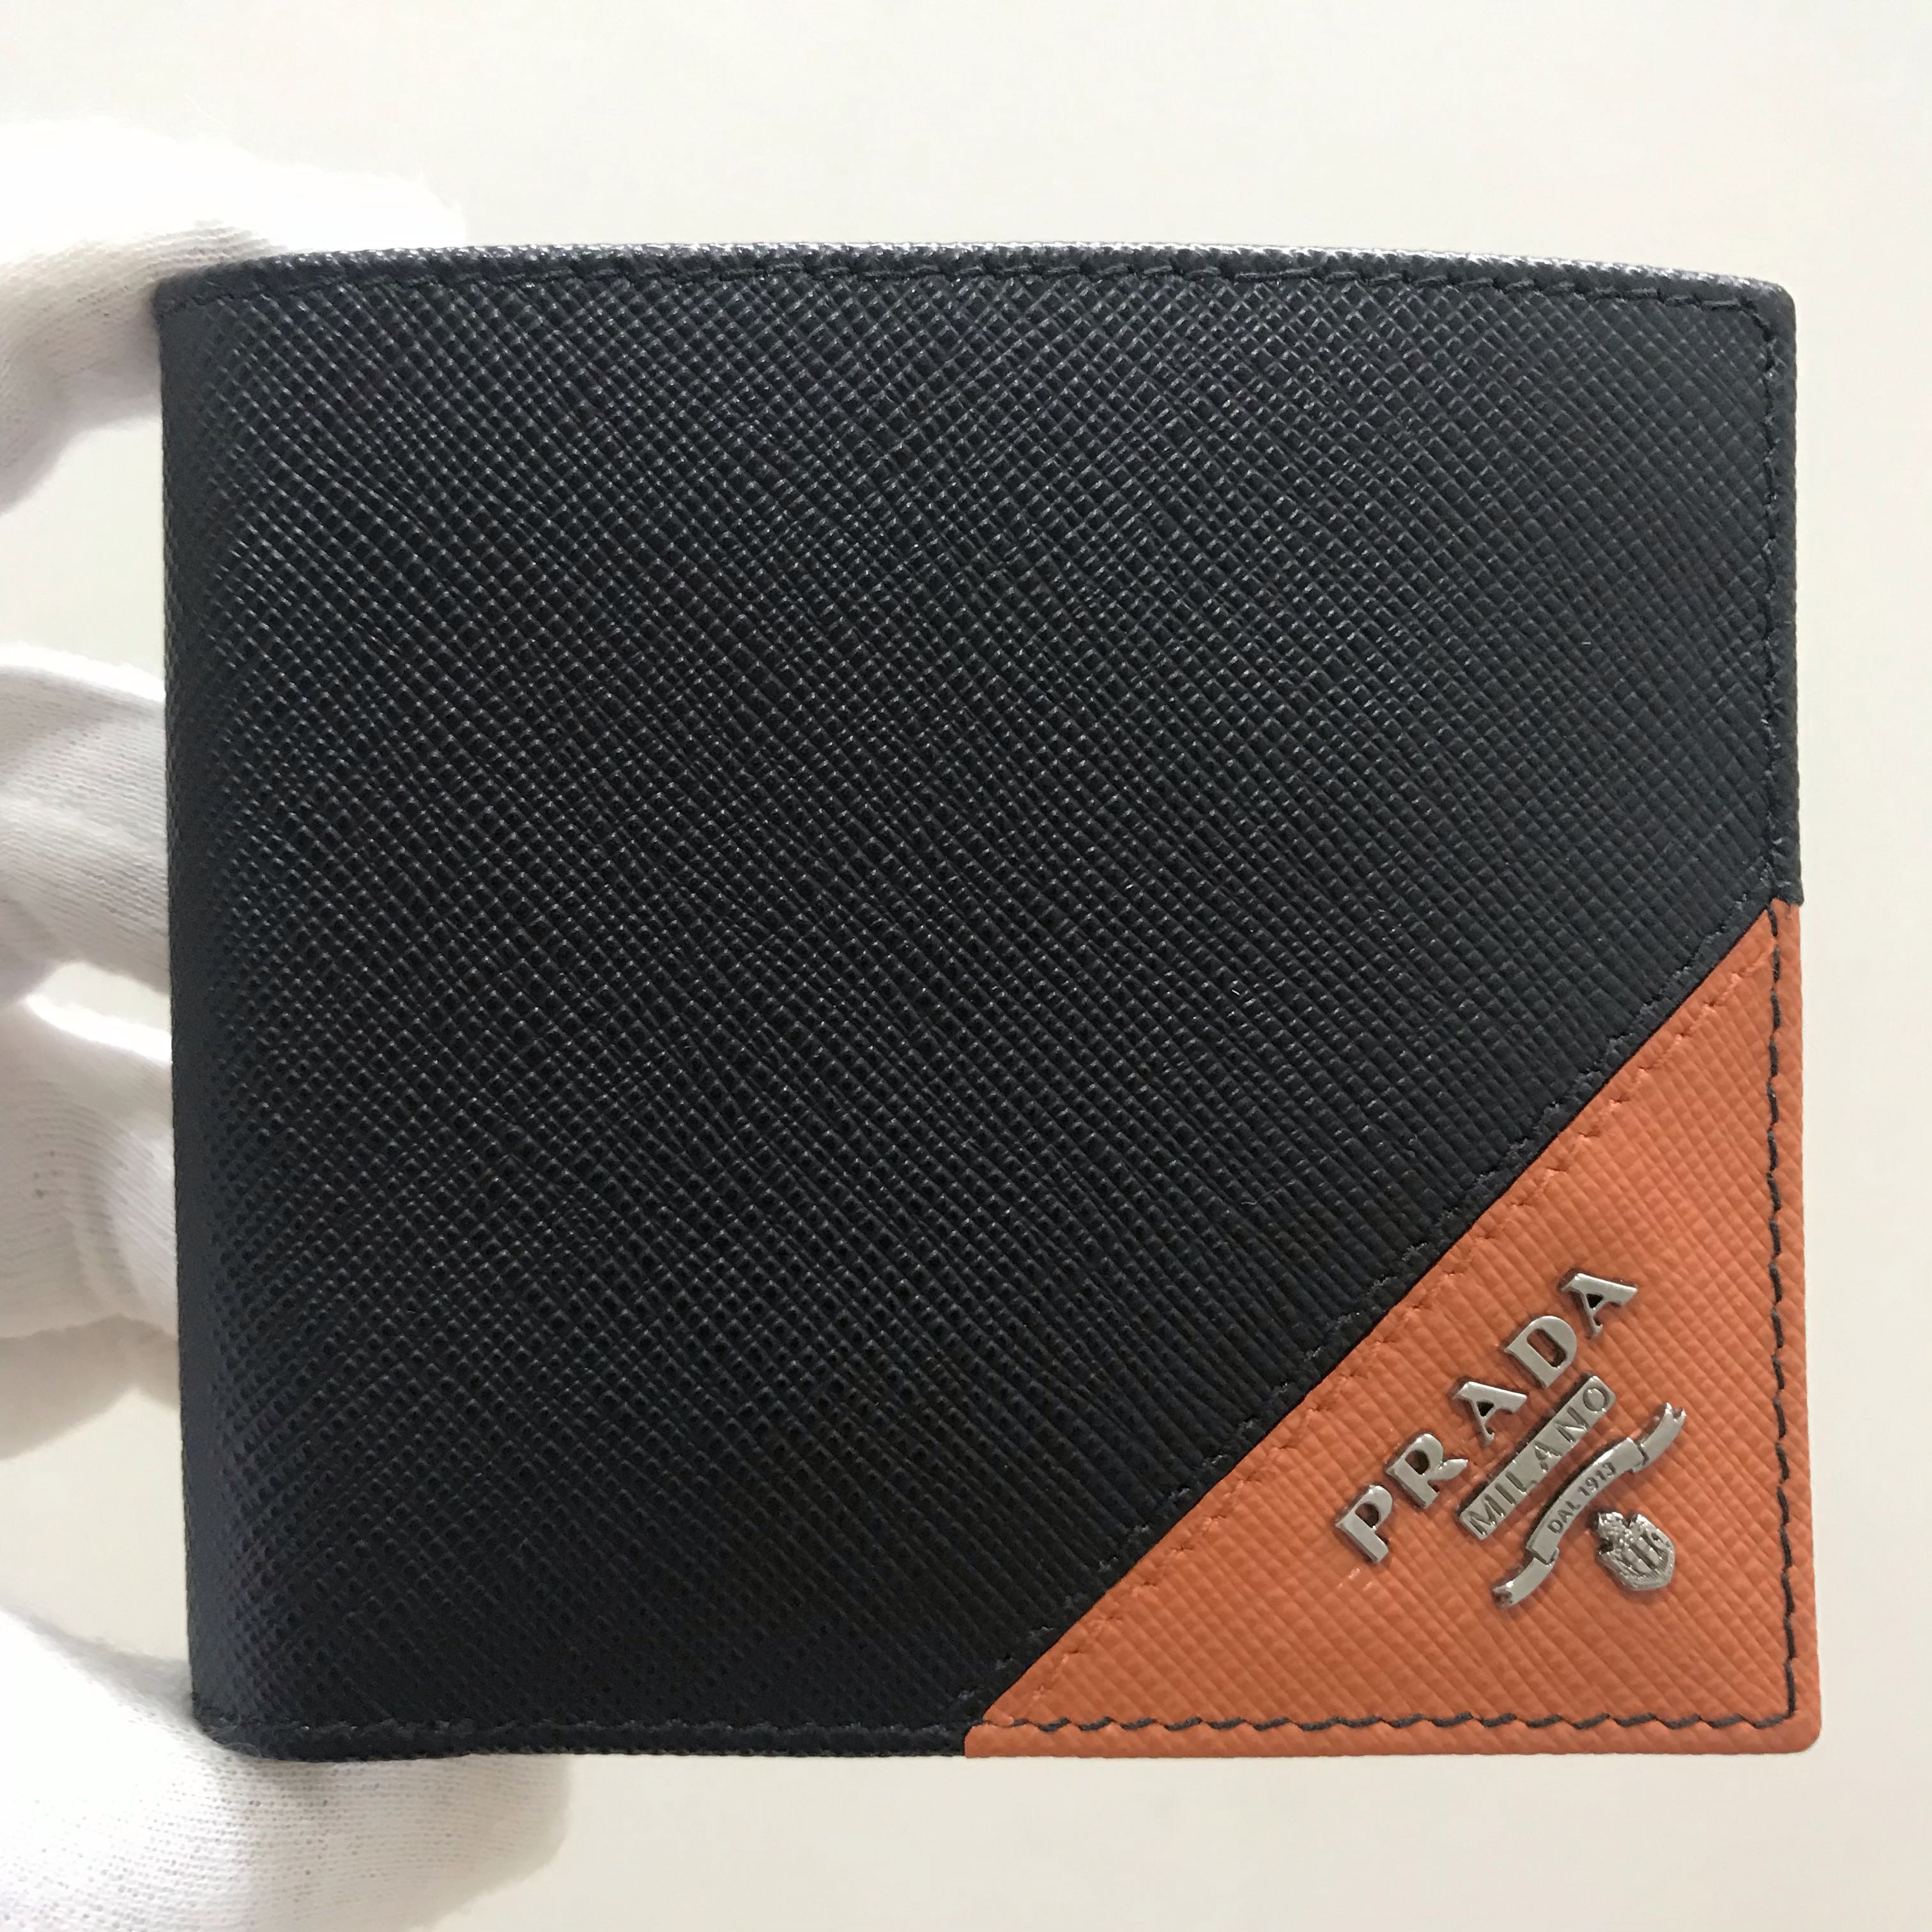 f961839b59f3 PRADA Men's Saffiano Leather Bifold Wallet 100% AUTHENTIC+BRAND NEW ...